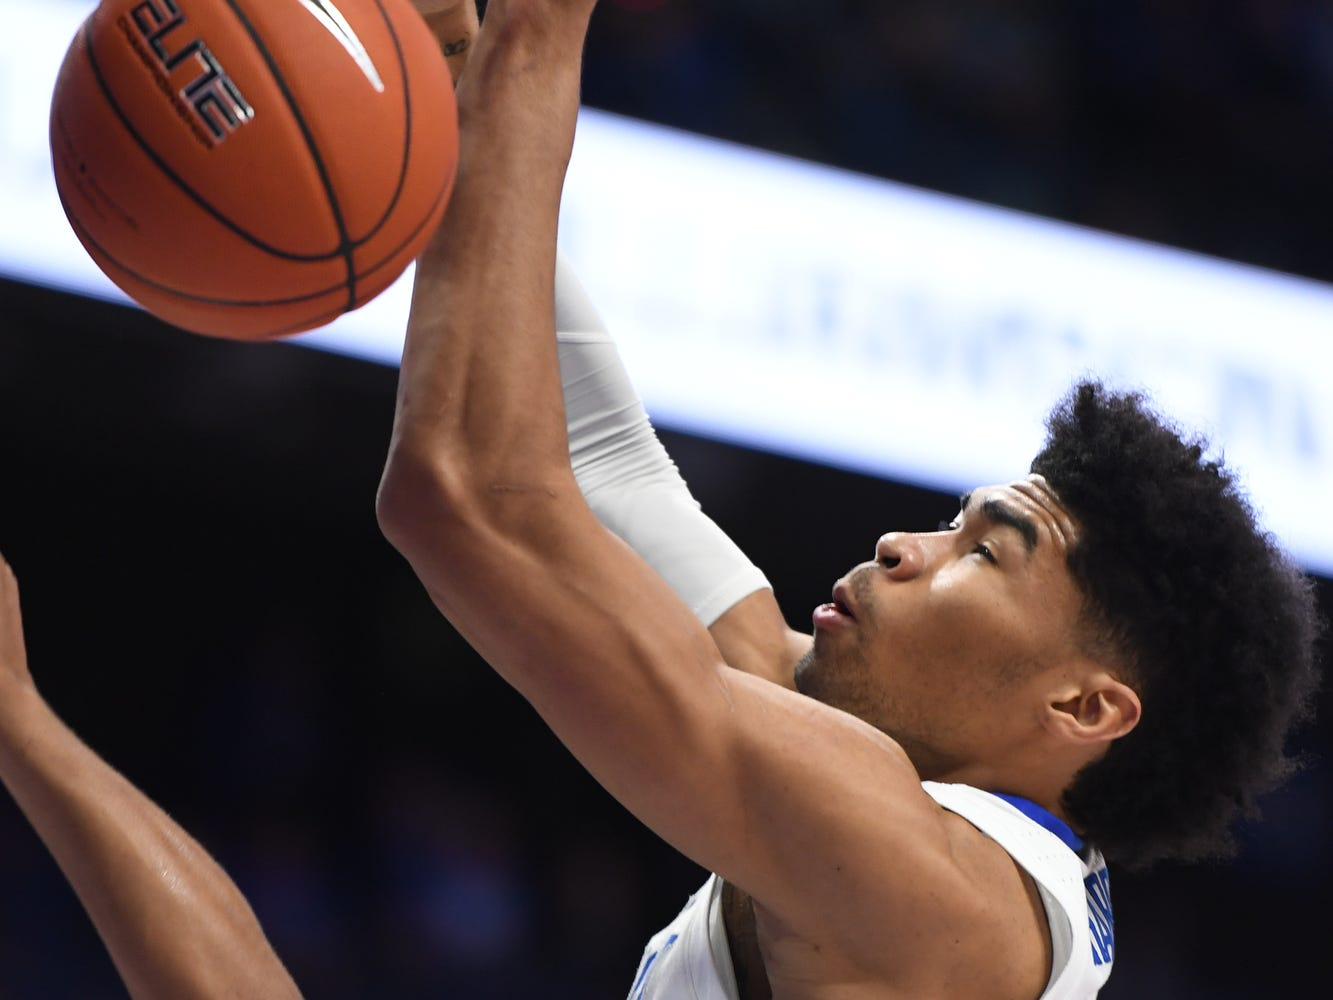 UK F Nick Richards gets a put back dunk during the University of Kentucky mens basketball game against Monmouth at Rupp Arena in Lexington, Kentucky on Wednesday, November 28, 2018.